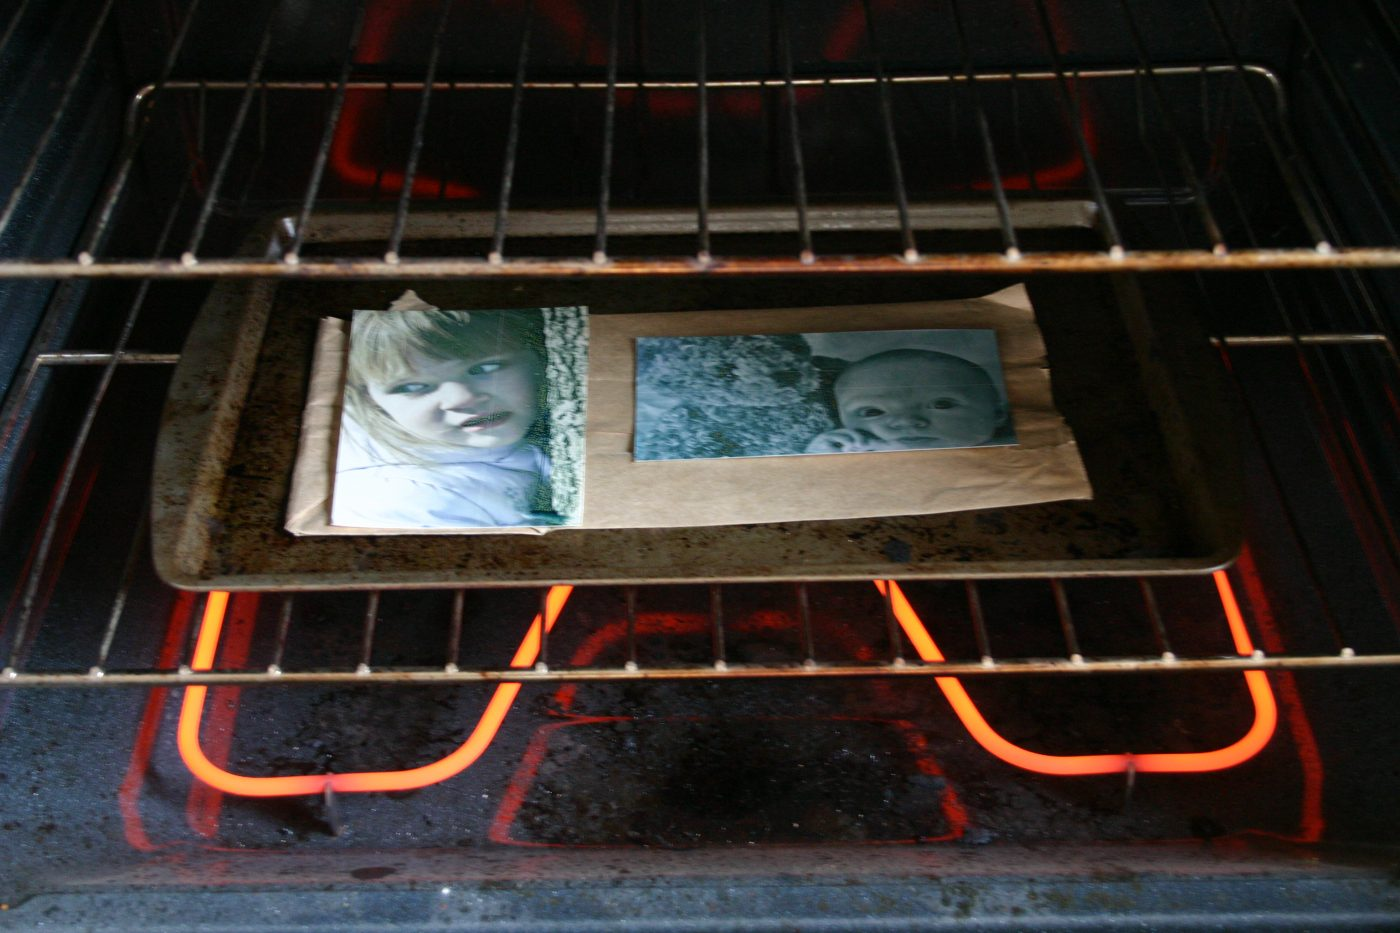 Shrinky Dinks in the oven